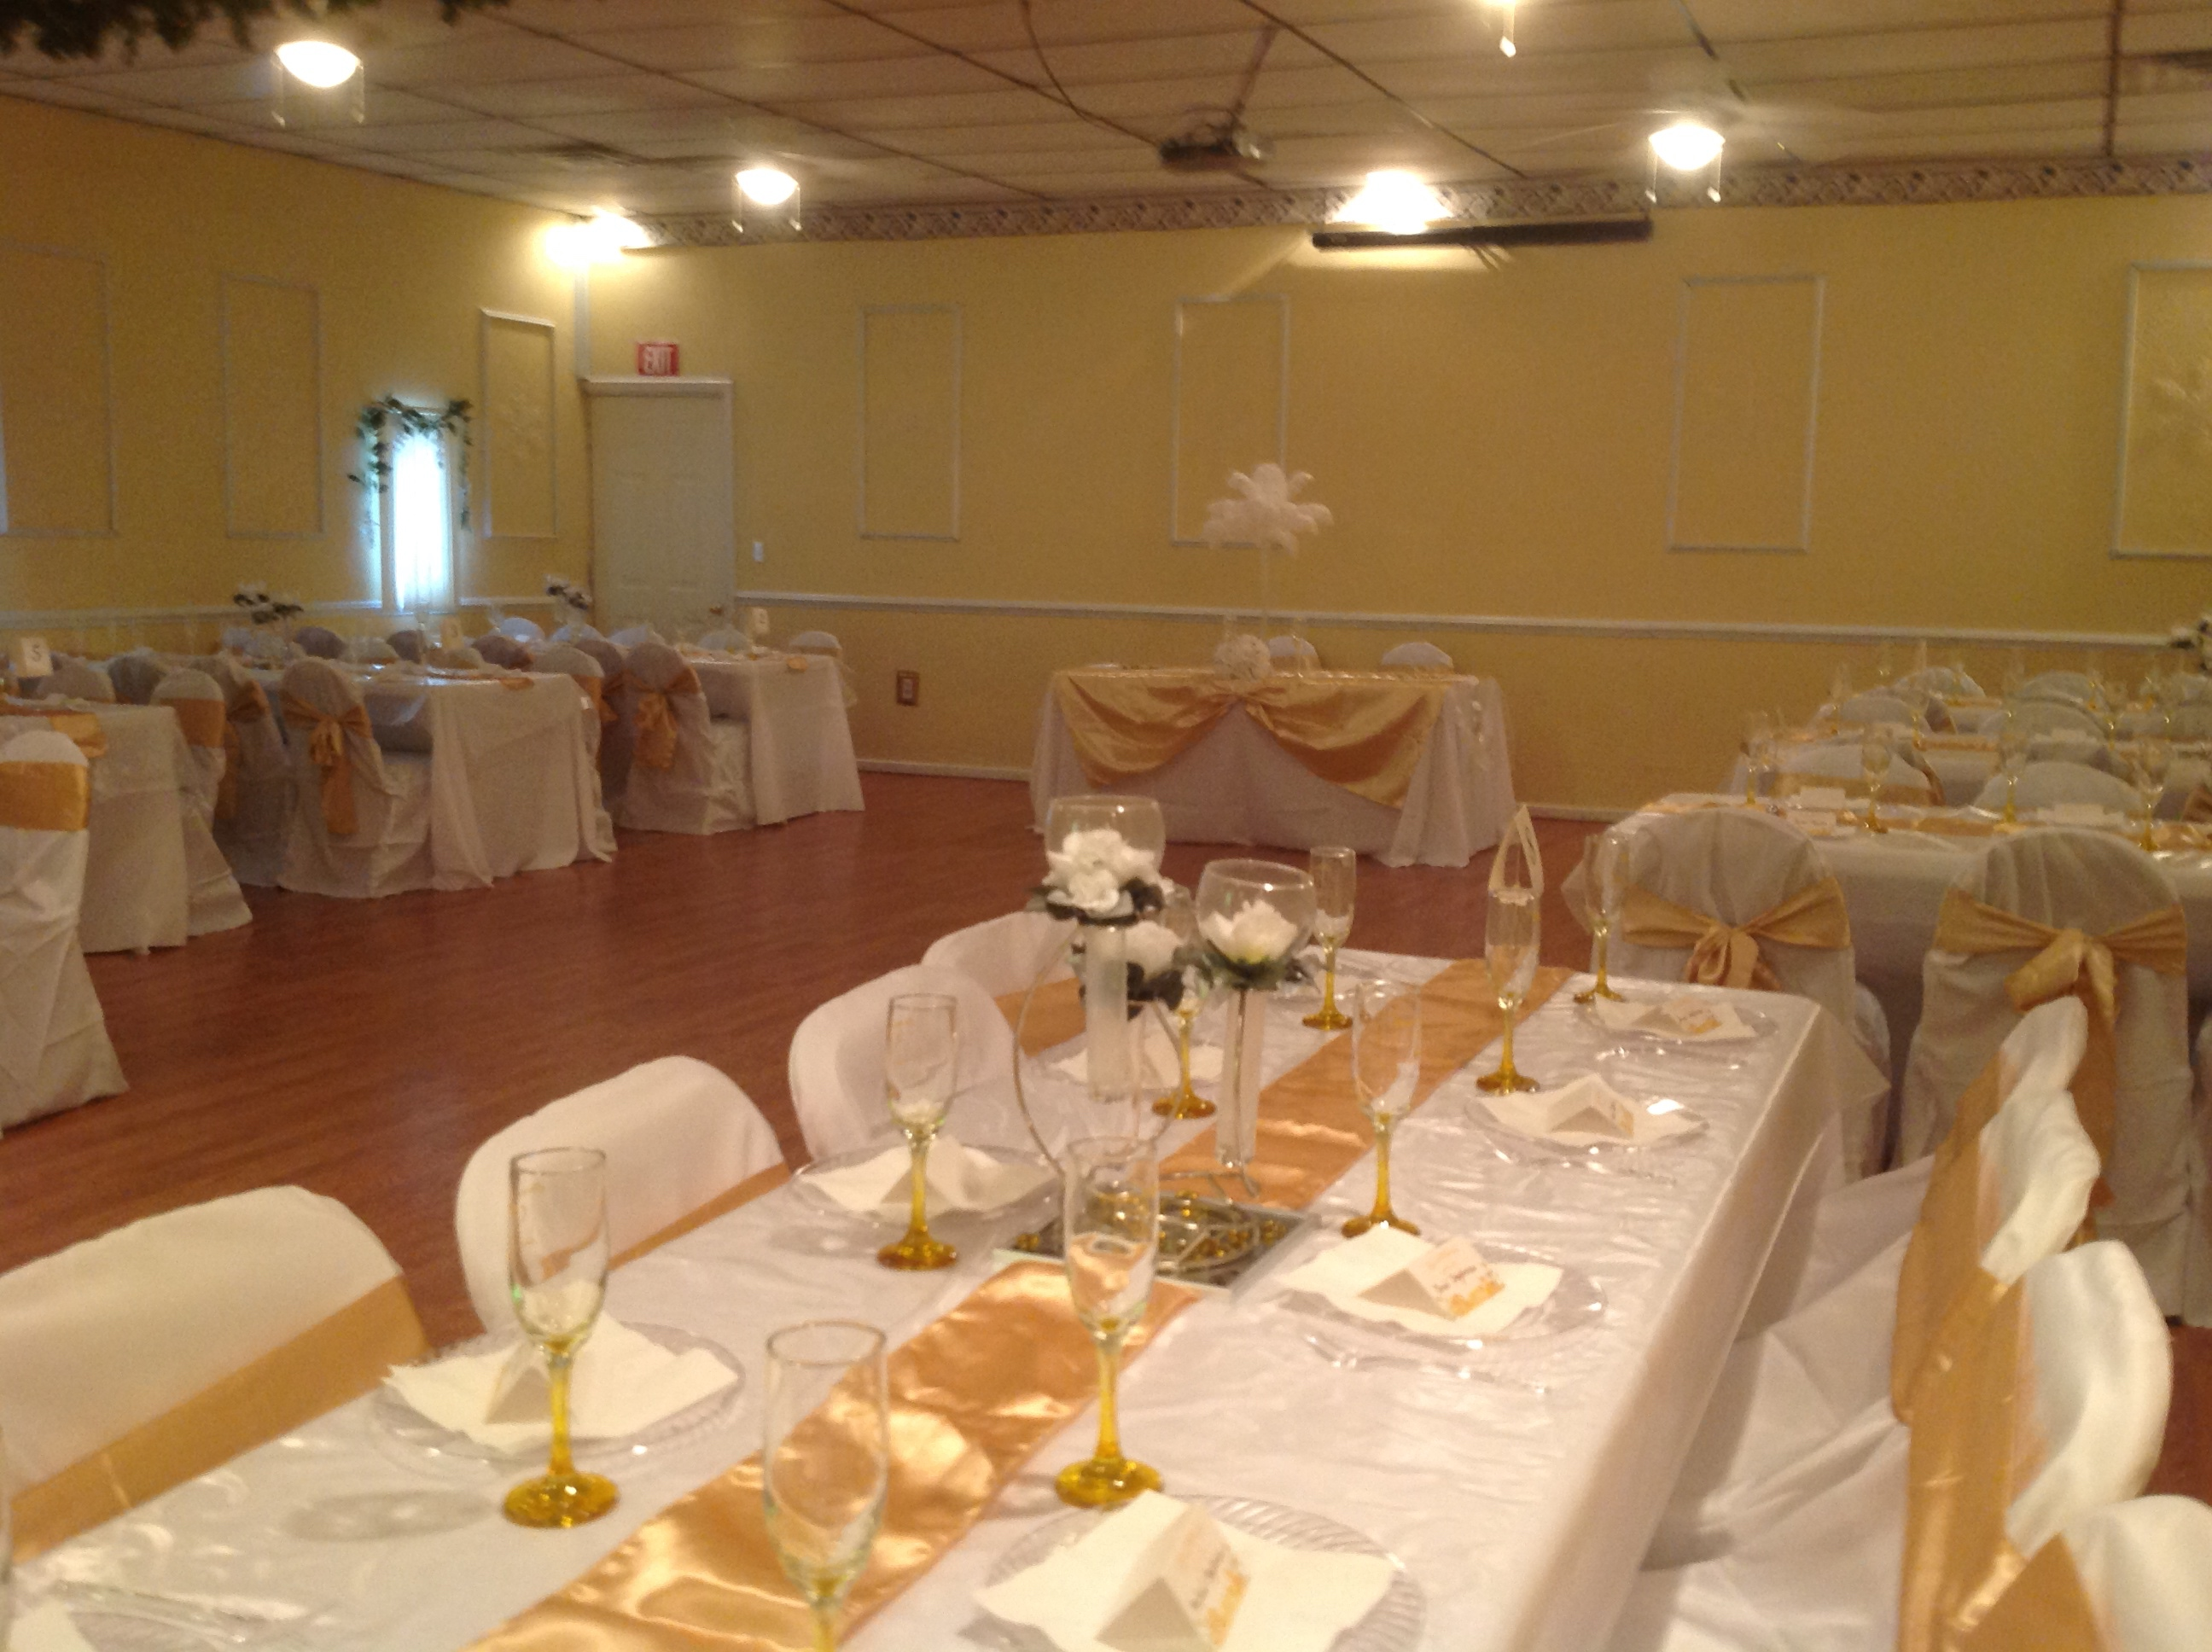 Solid Rock Wedding Chapel Event Center 1512 Edgefield Rd North Augusta SC 29860